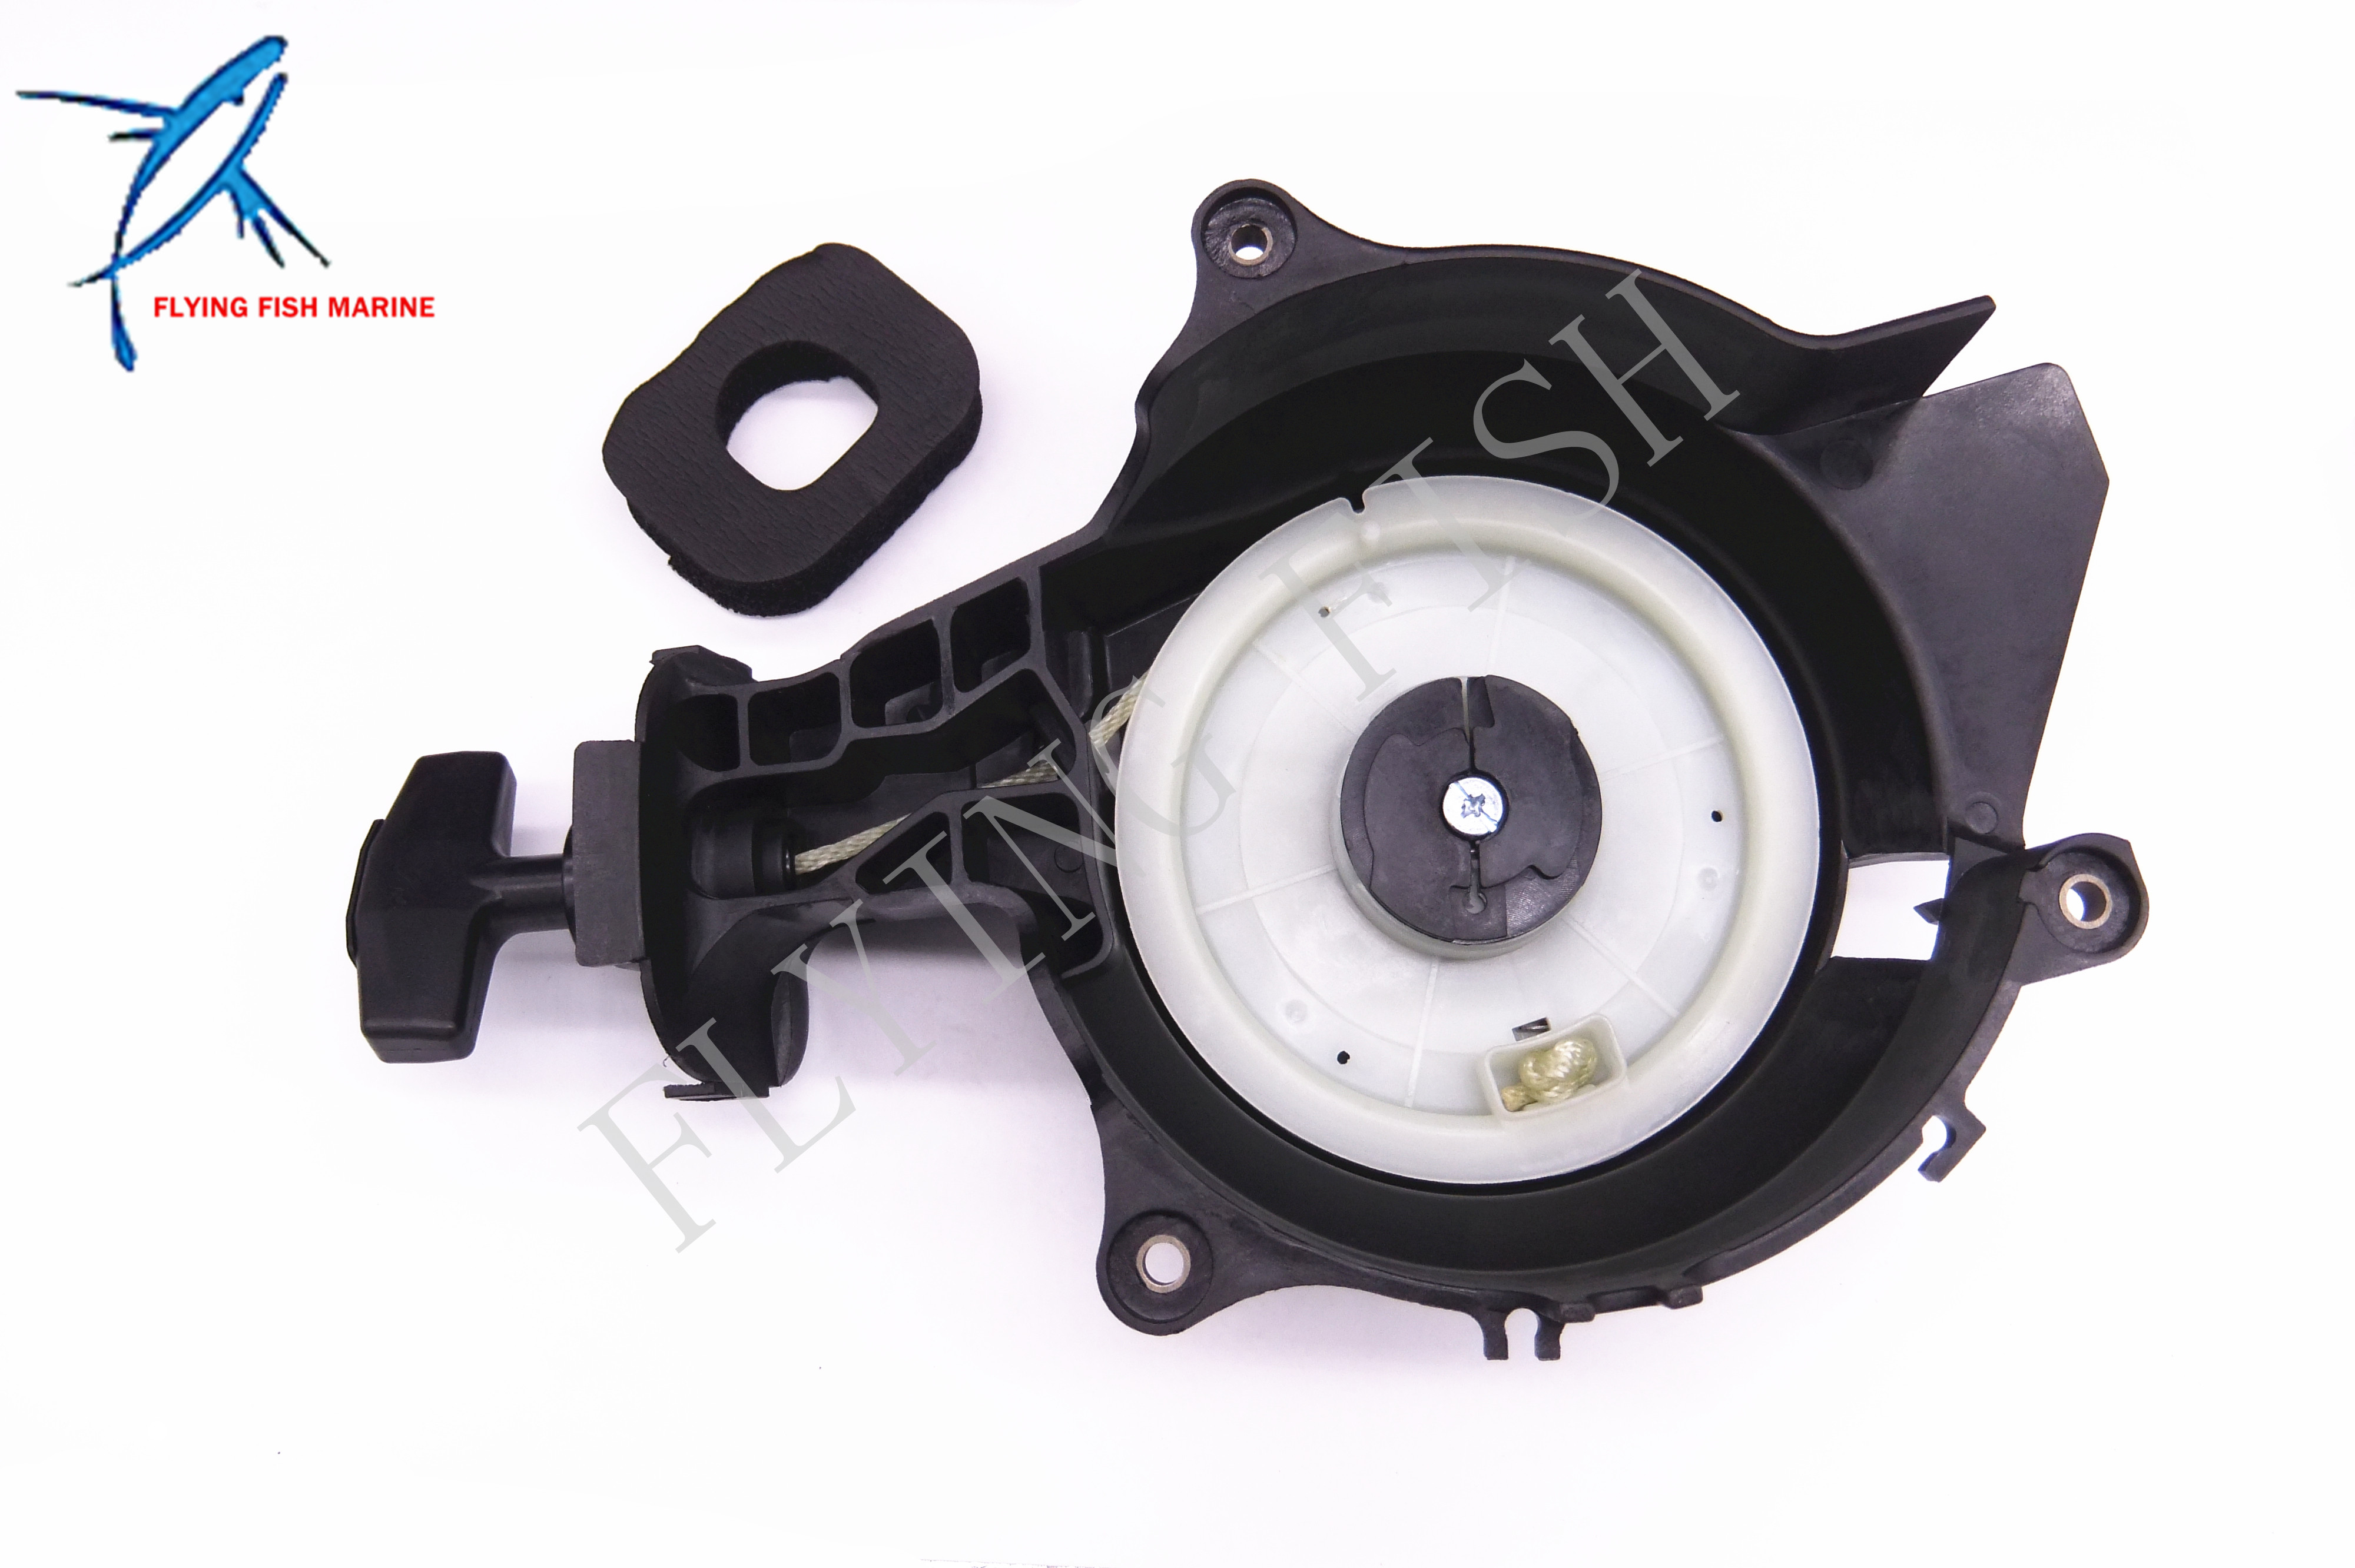 Starter Assy F4 04130000 for Parsun HDX F4 F5 Outboard Motors